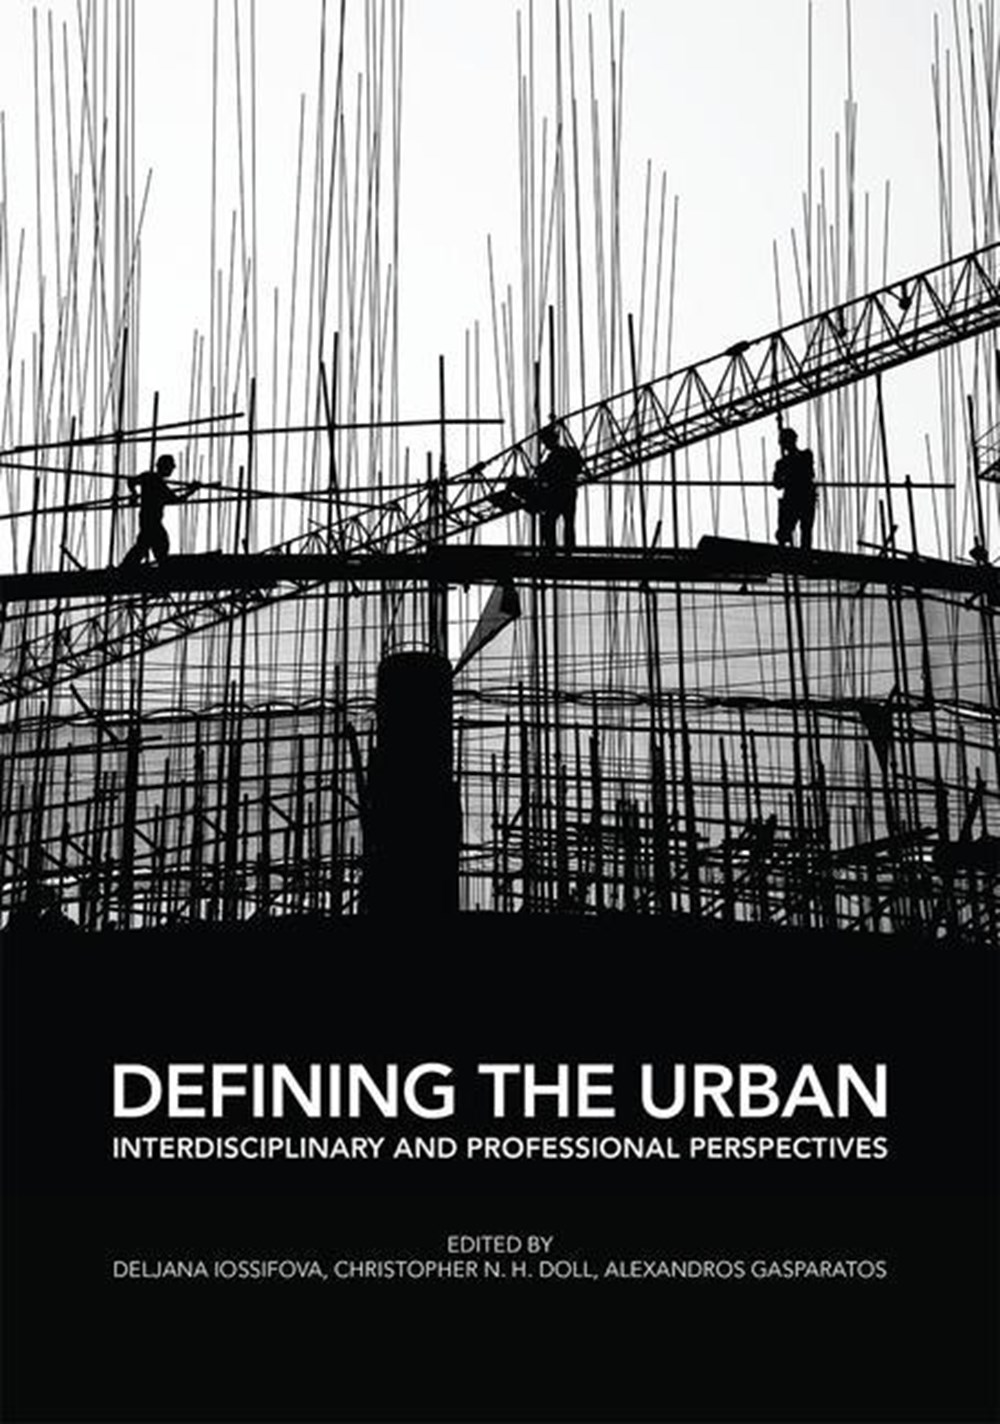 Defining the Urban Interdisciplinary and Professional Perspectives